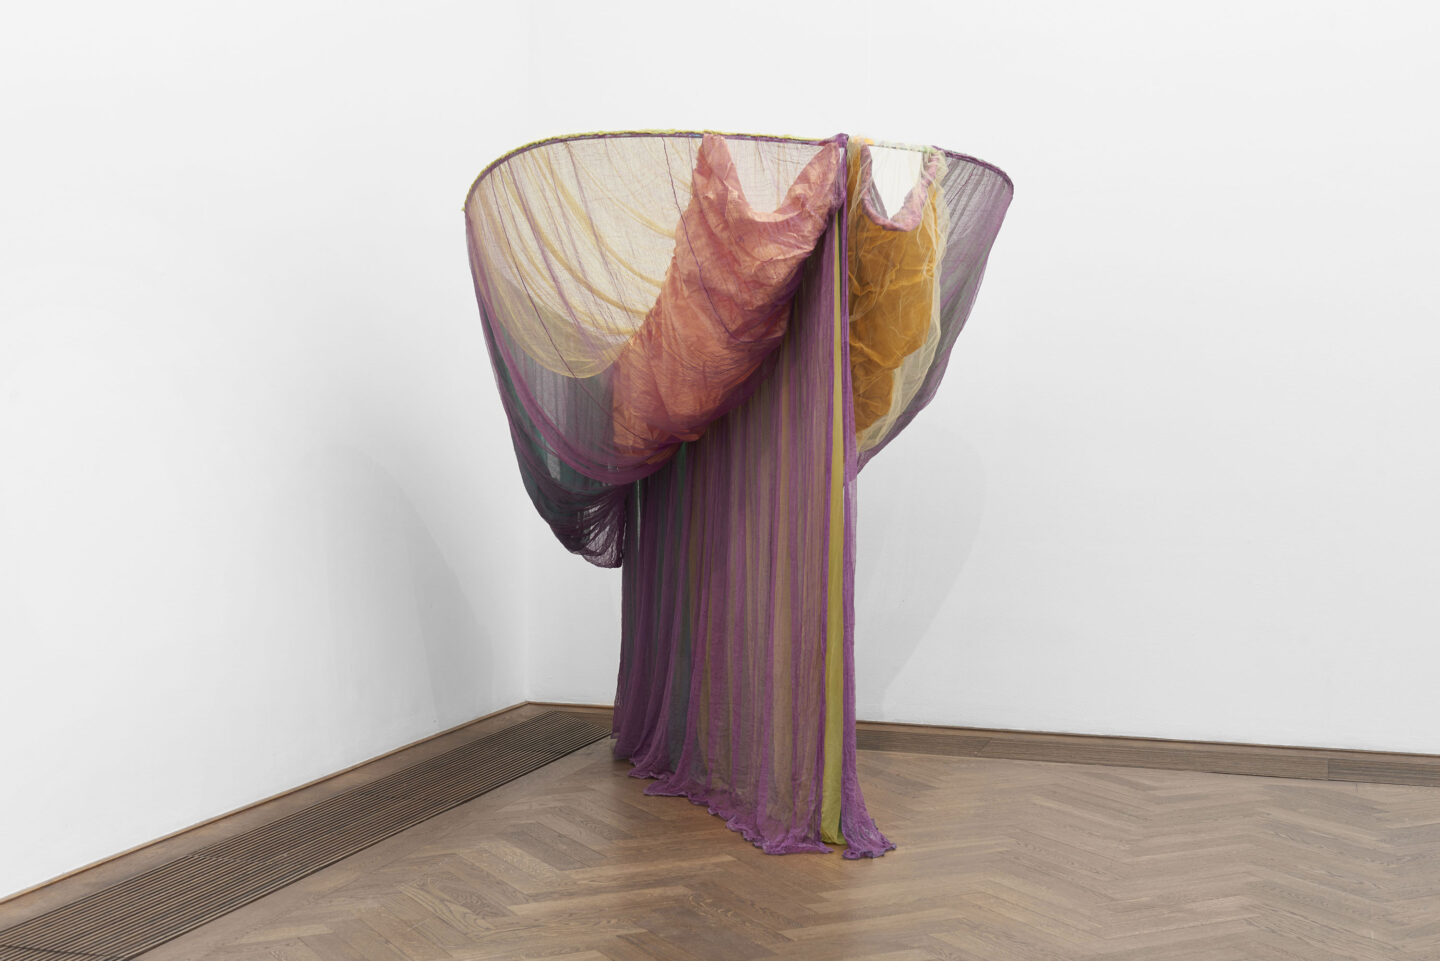 Exhibition View Groupshow «Bizarre Silks, Private Imaginings and Narrative Facts, etc.; view on Rosemary Mayer, Galla Placidia, 1973» an exhibition by Nick Mauss at Kunsthalle Basel, Basel, 2020 / Photo: Philipp Hänger and Kunsthalle Basel / Courtesy: the artist and Kunsthalle Basel